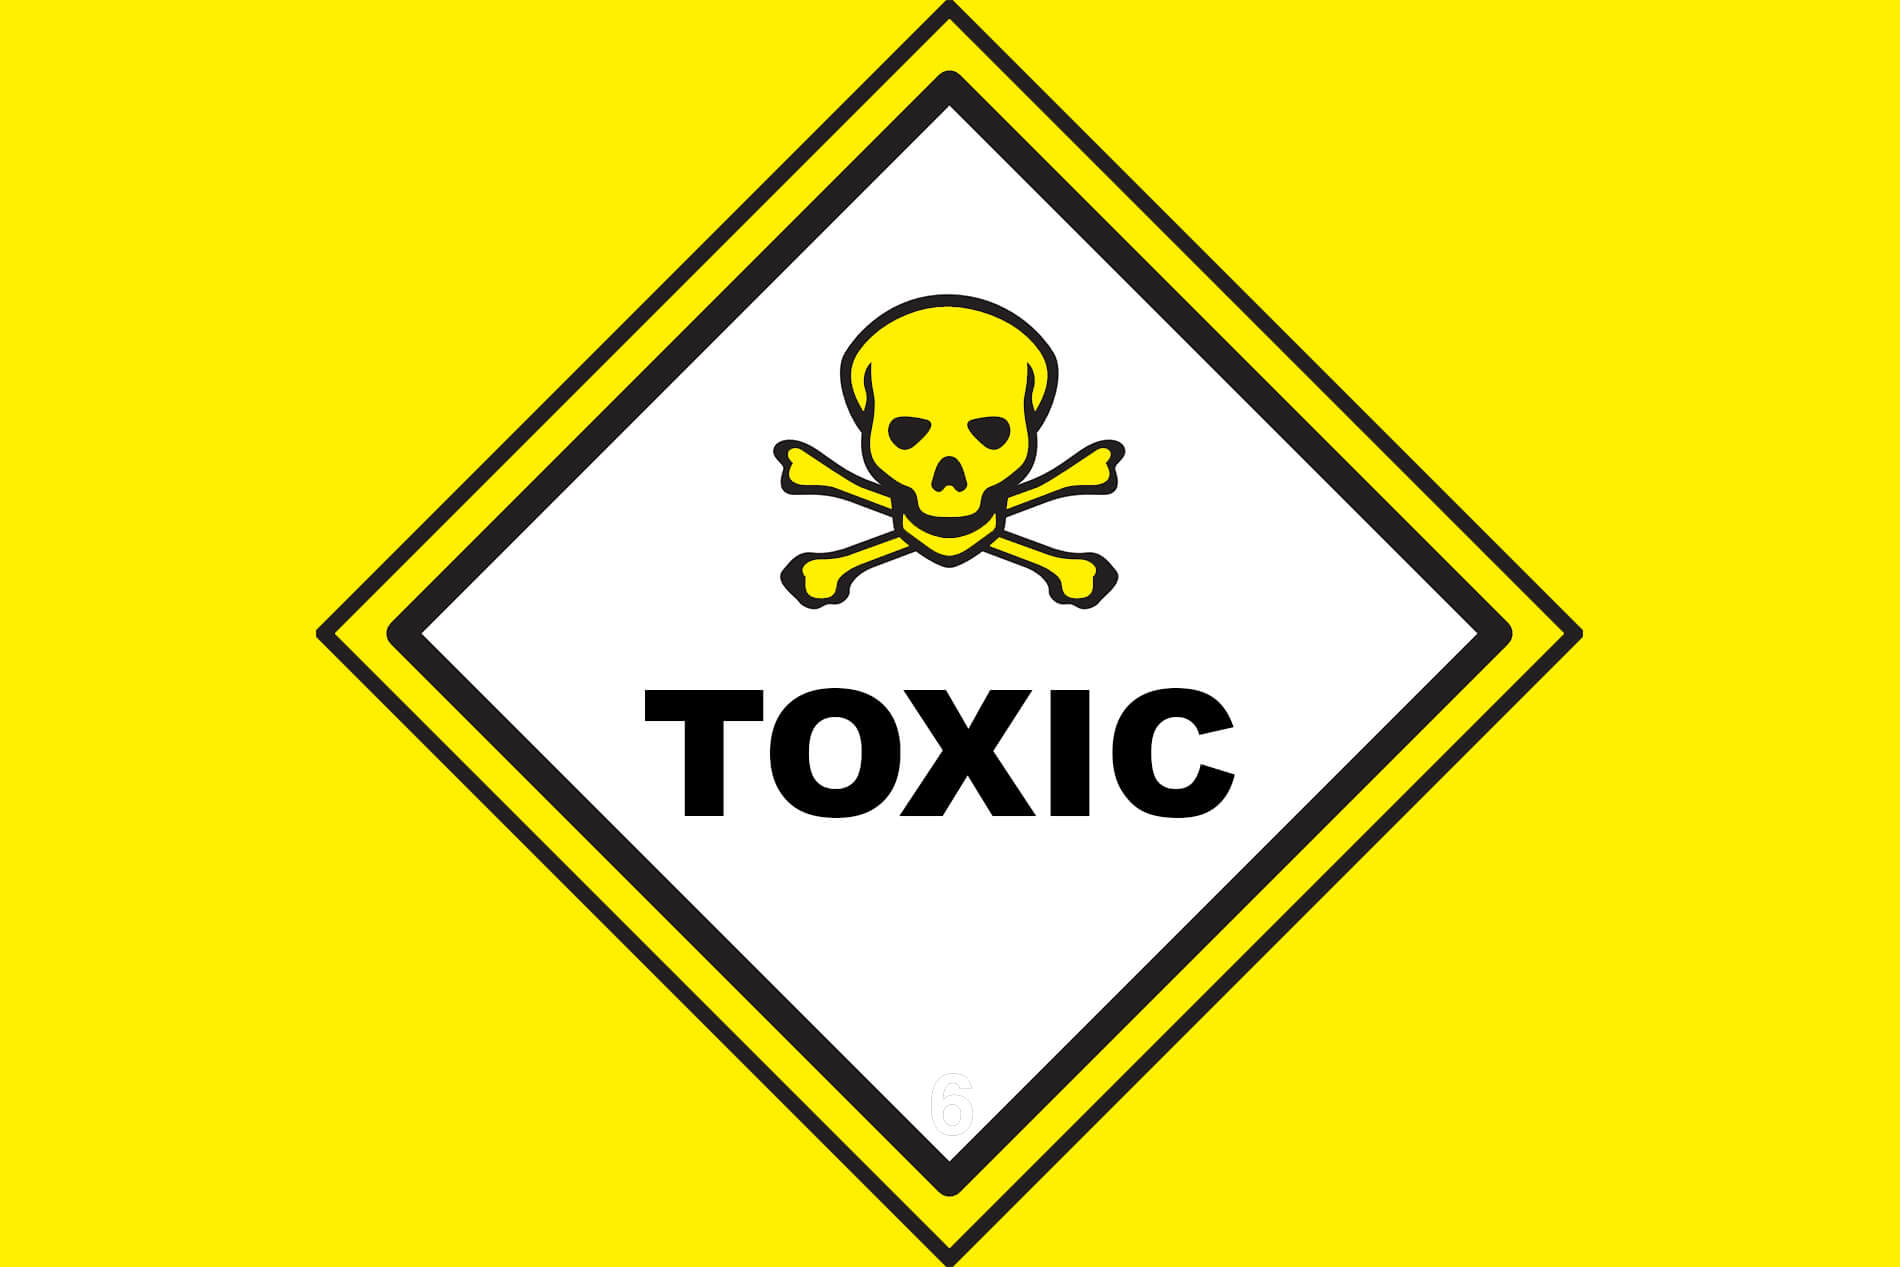 Women of color exposed to more toxic chemicals